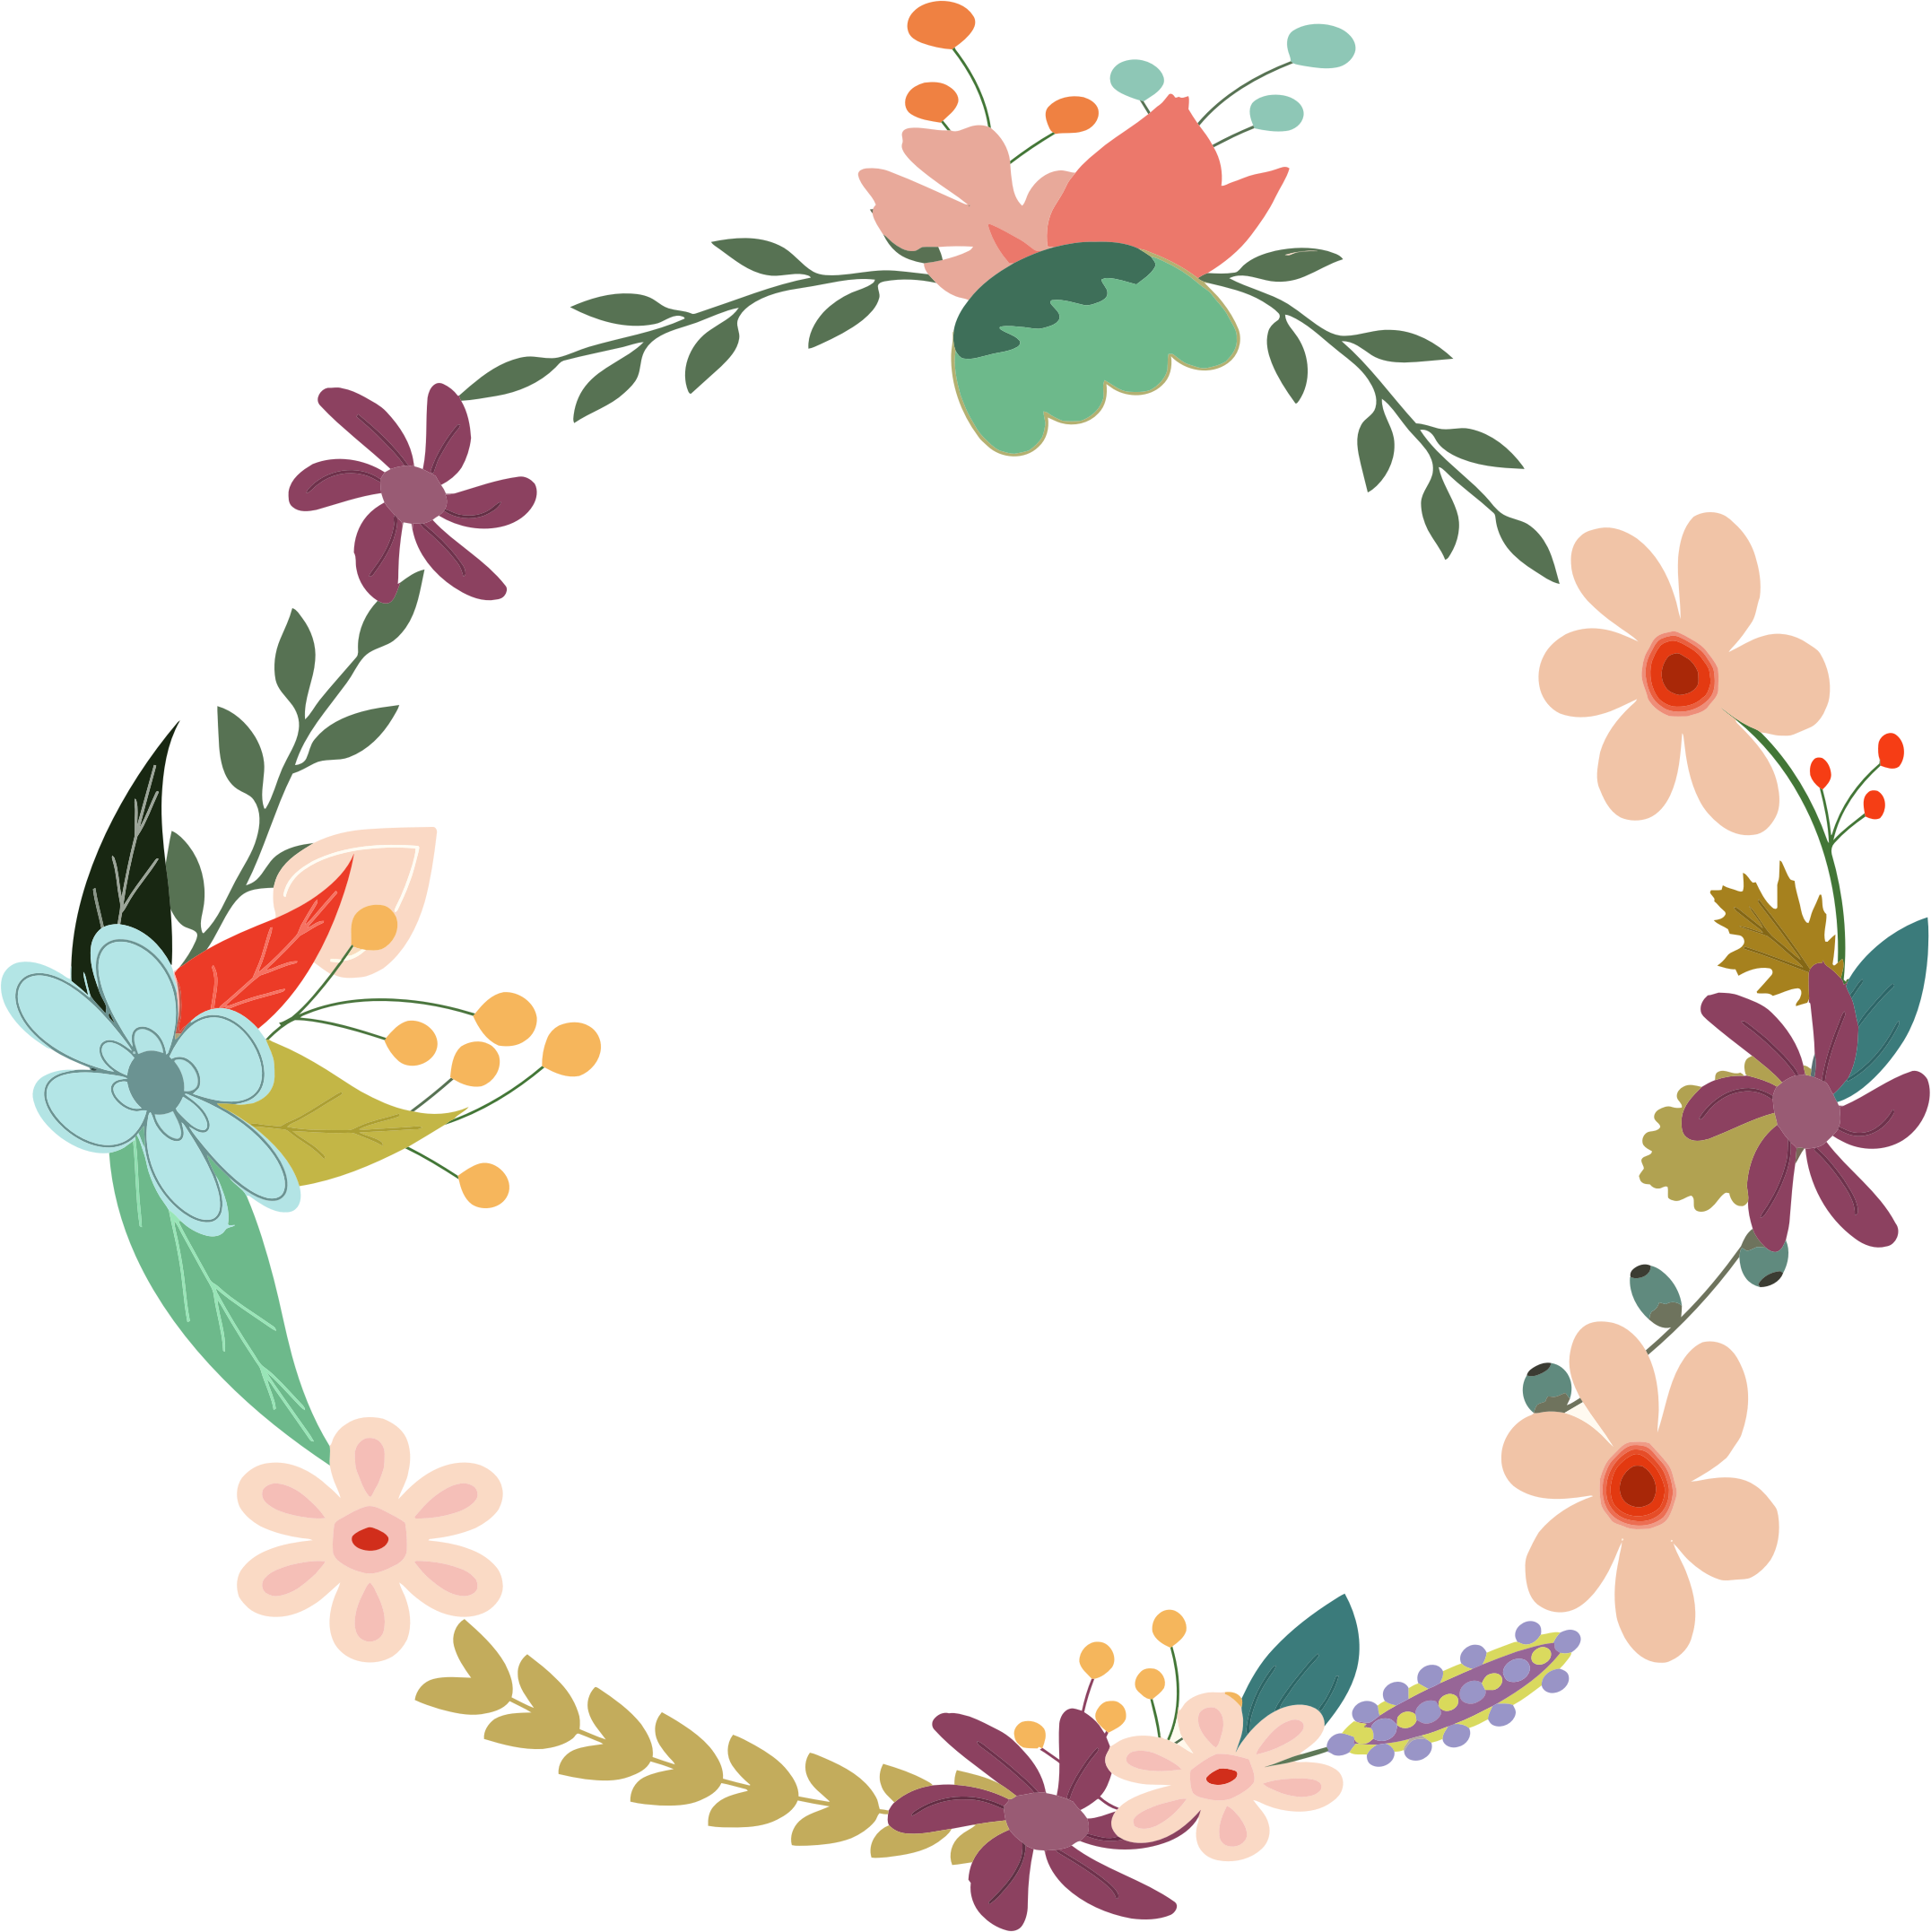 openclipart, vintage floral wreath gdj from pdp with love #31483